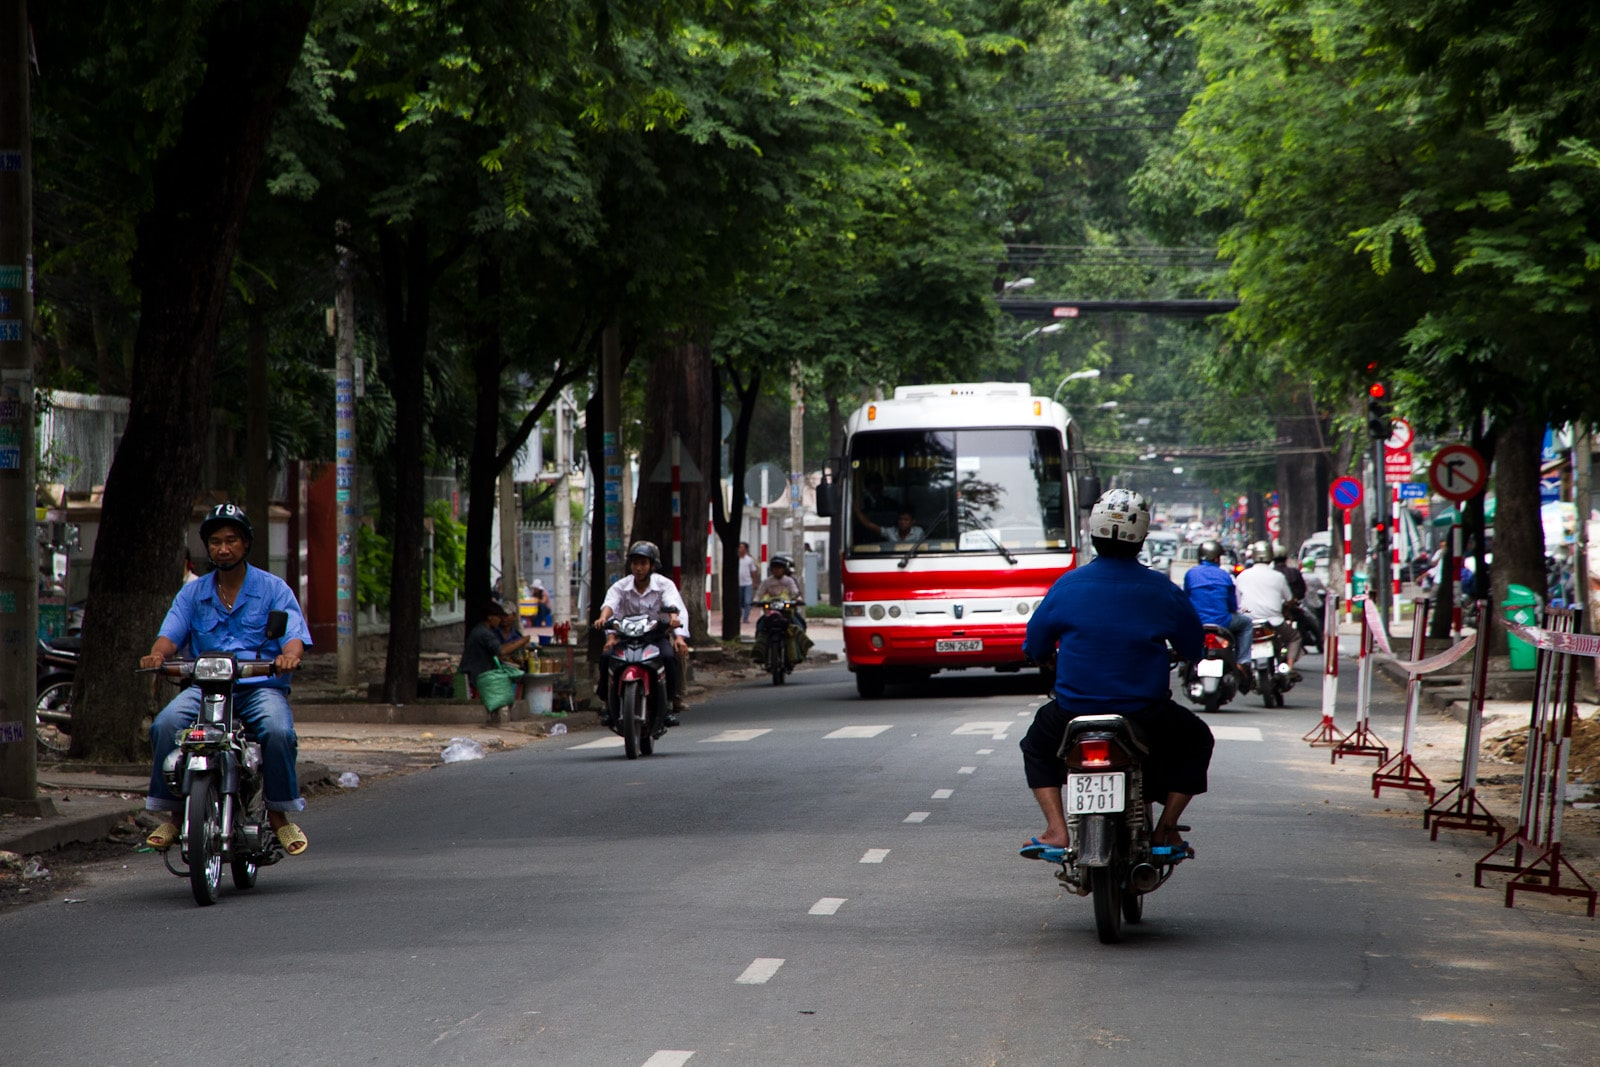 Image of people riding motorbikes on a street in Vietnam